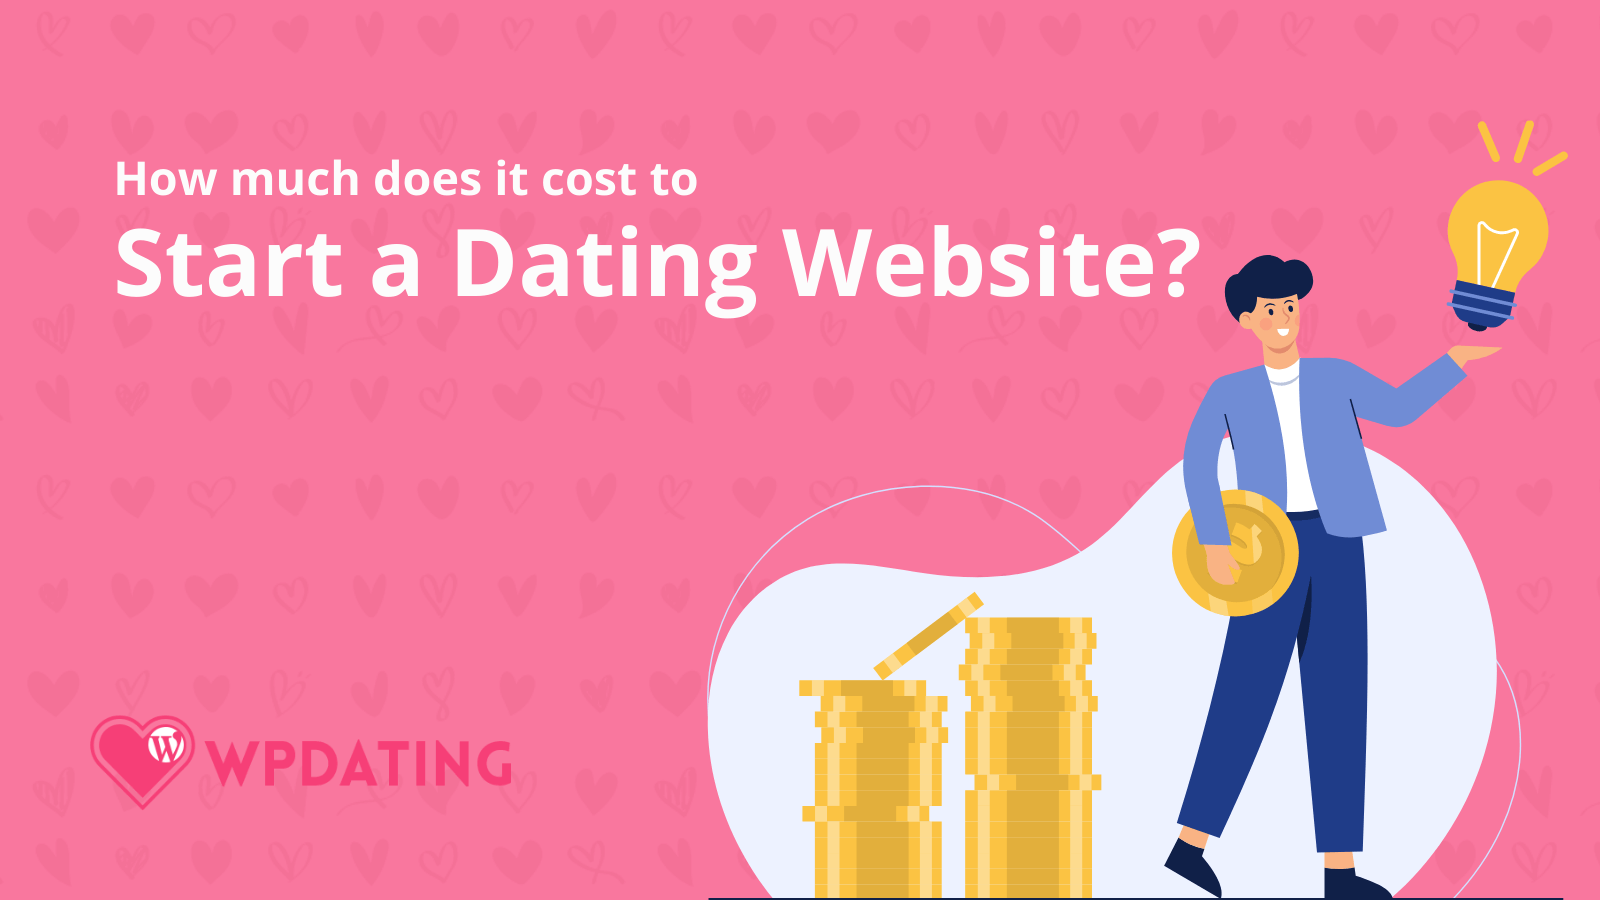 You can create a profitable dating website at $149